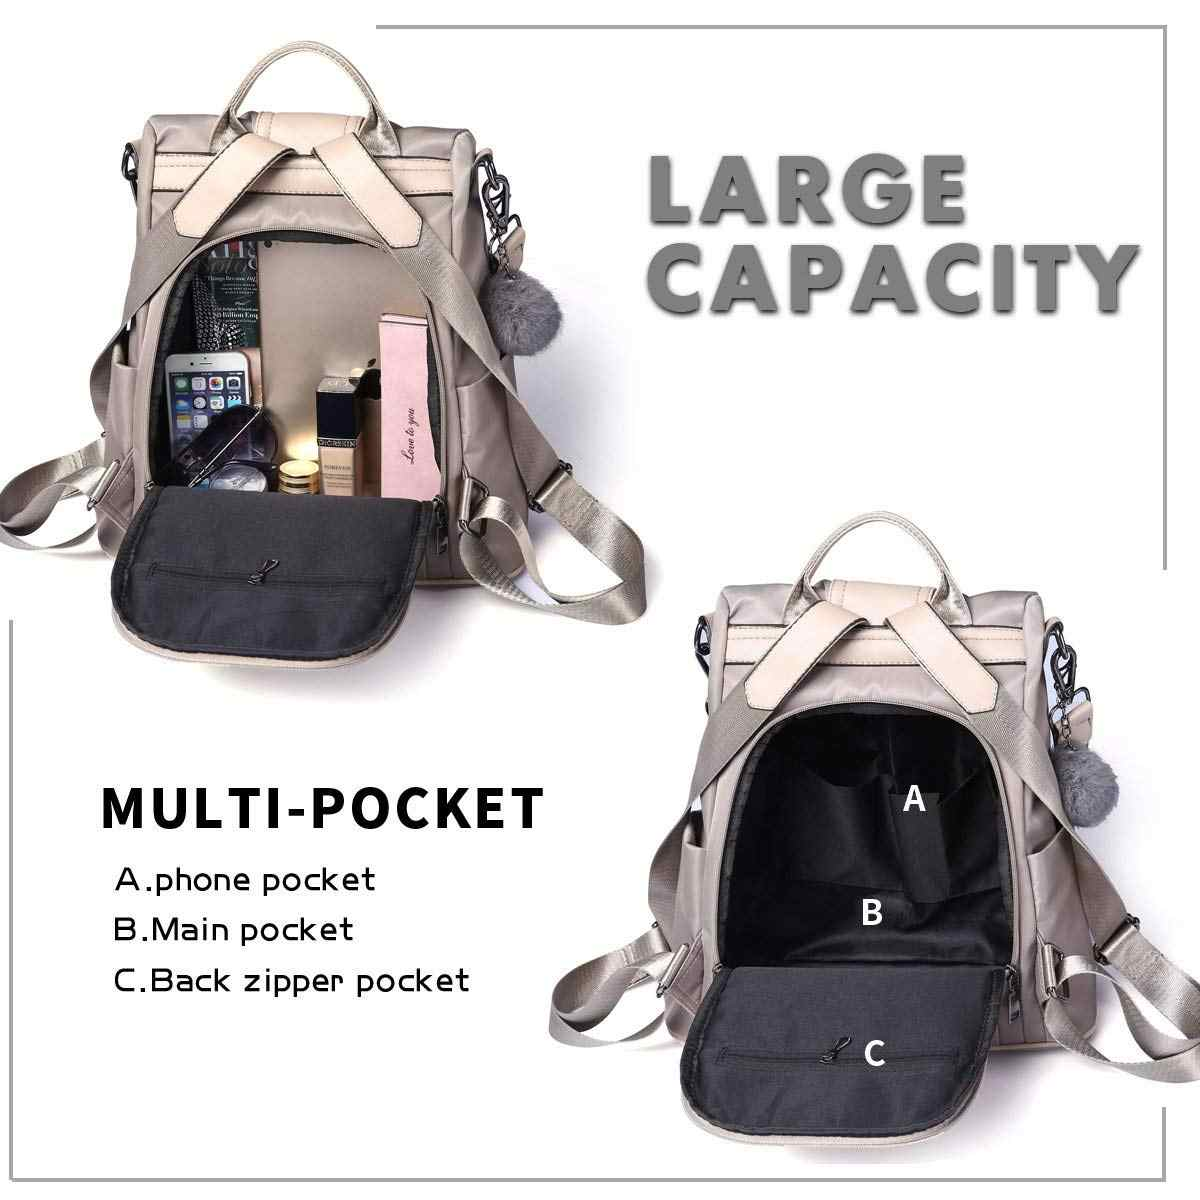 56a85d9dbb0 Women Backpack Purse Waterproof Anti-theft Rucksack Lightweight School  Shoulder Bag